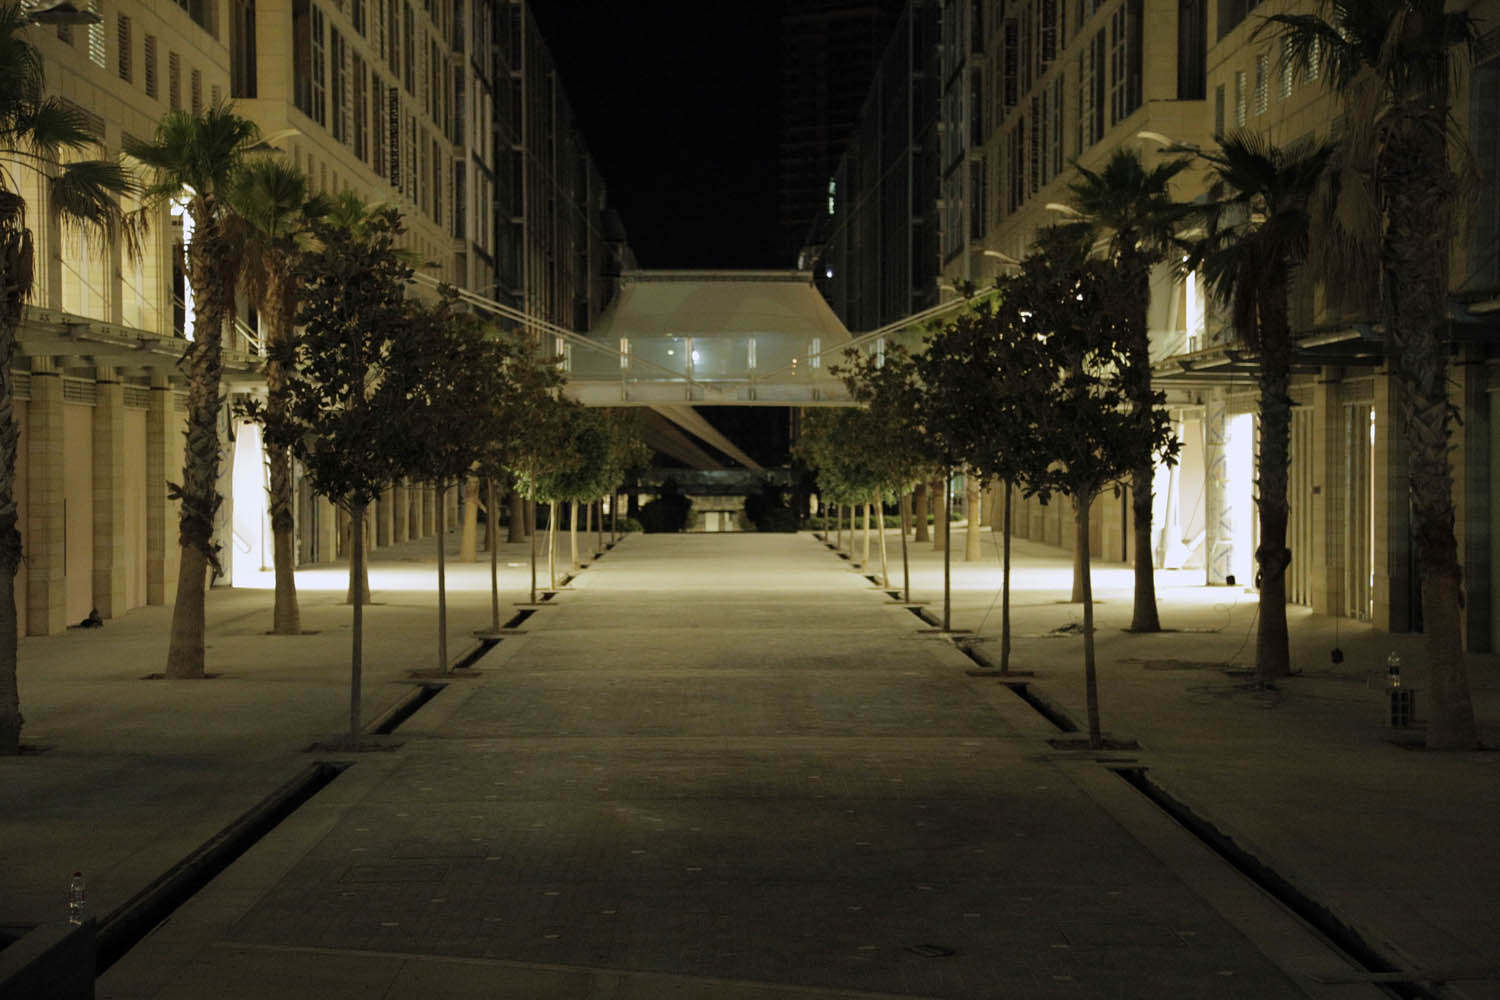 The Abdali Boulevard Consists Of 12 Buildings 6 On Each Side Pedestrian Spine Central Is 370 Meters Long And 21 Wide